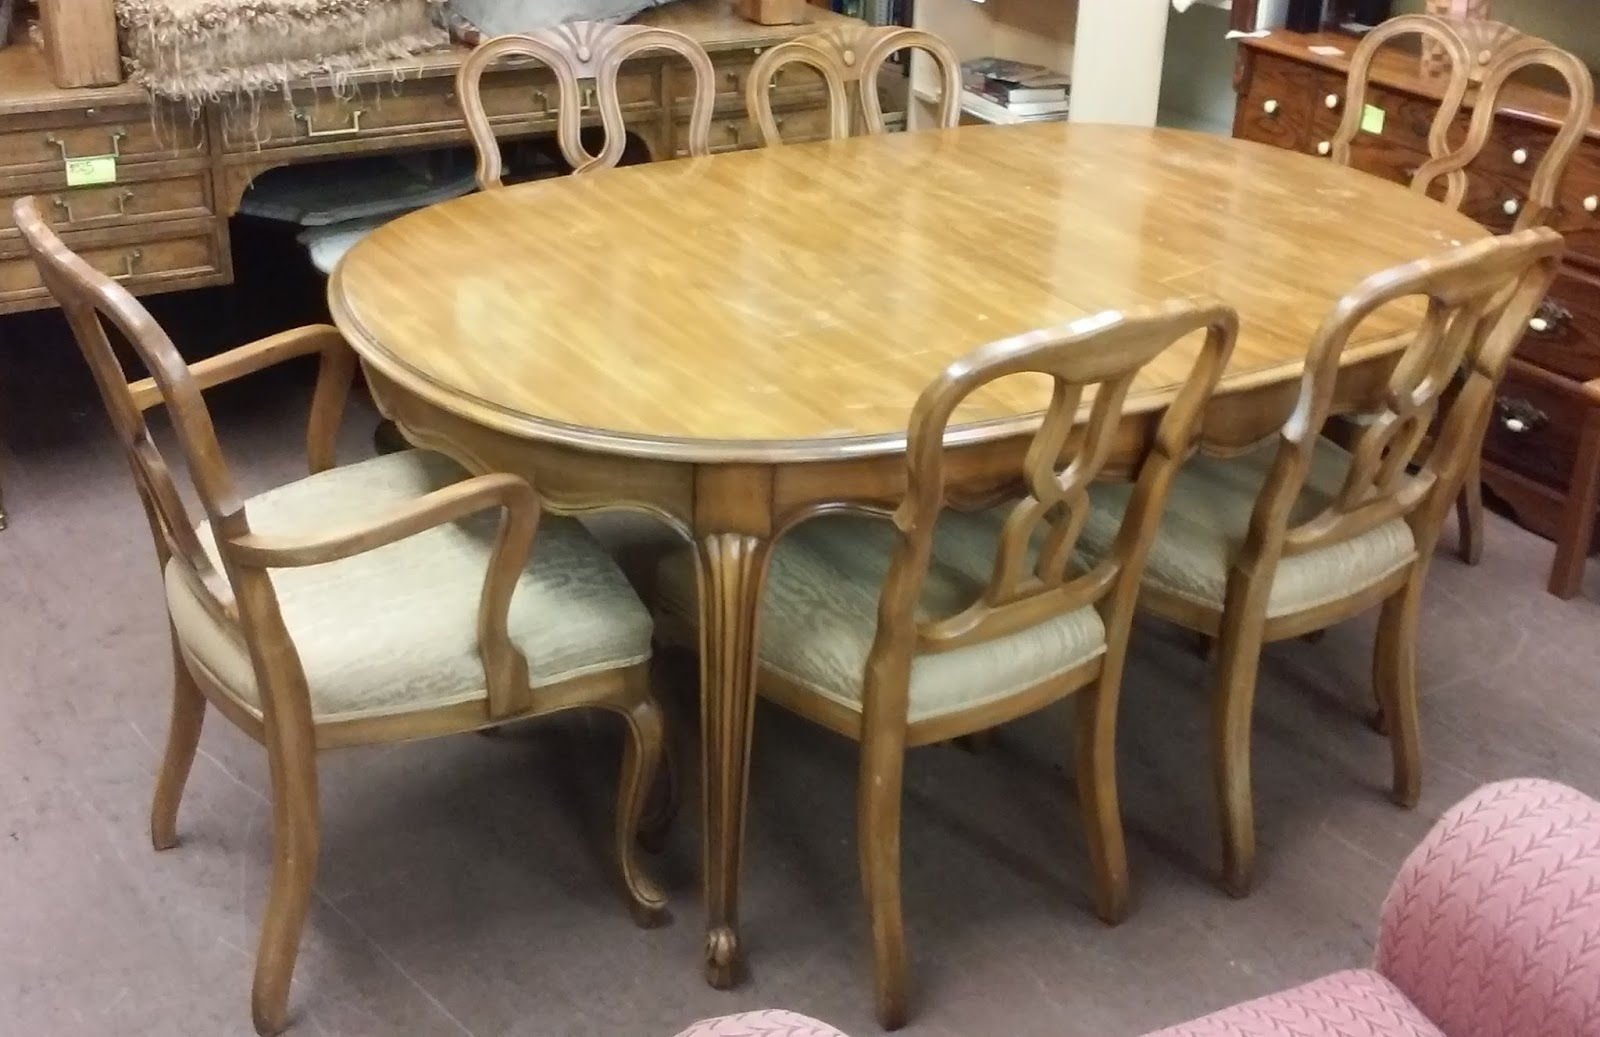 SOLD John Widdicomb Dining Set Table 2 Leaves 6 Chairs